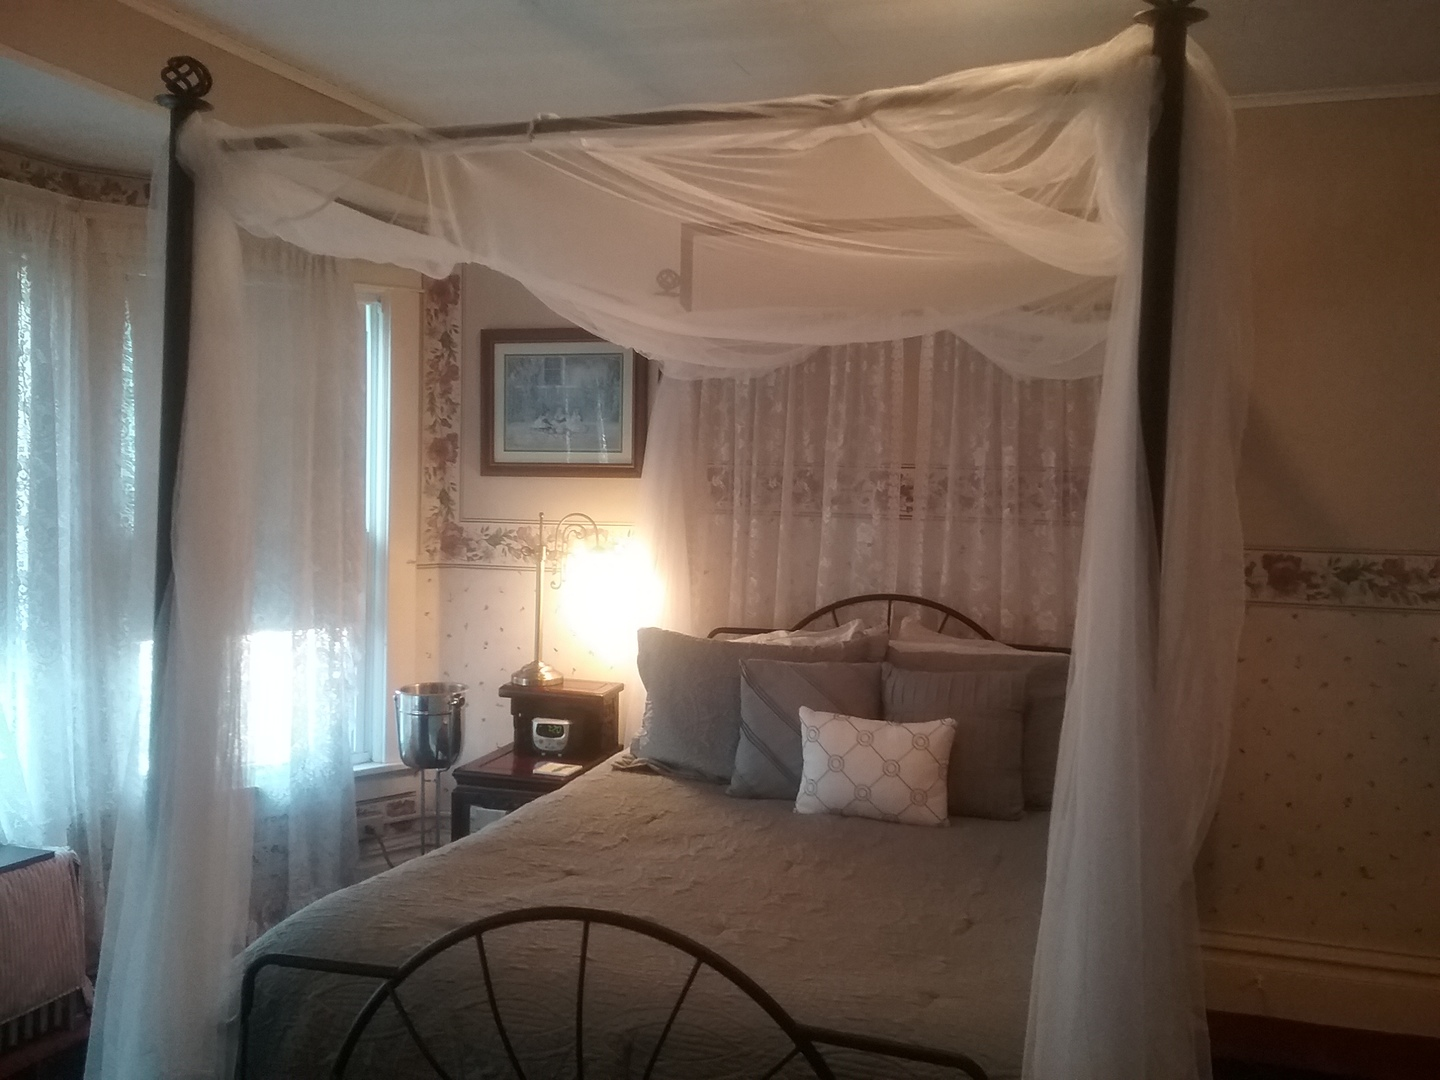 A bedroom with a bed in a room at Candlelite Inn Bed & Breakfast.